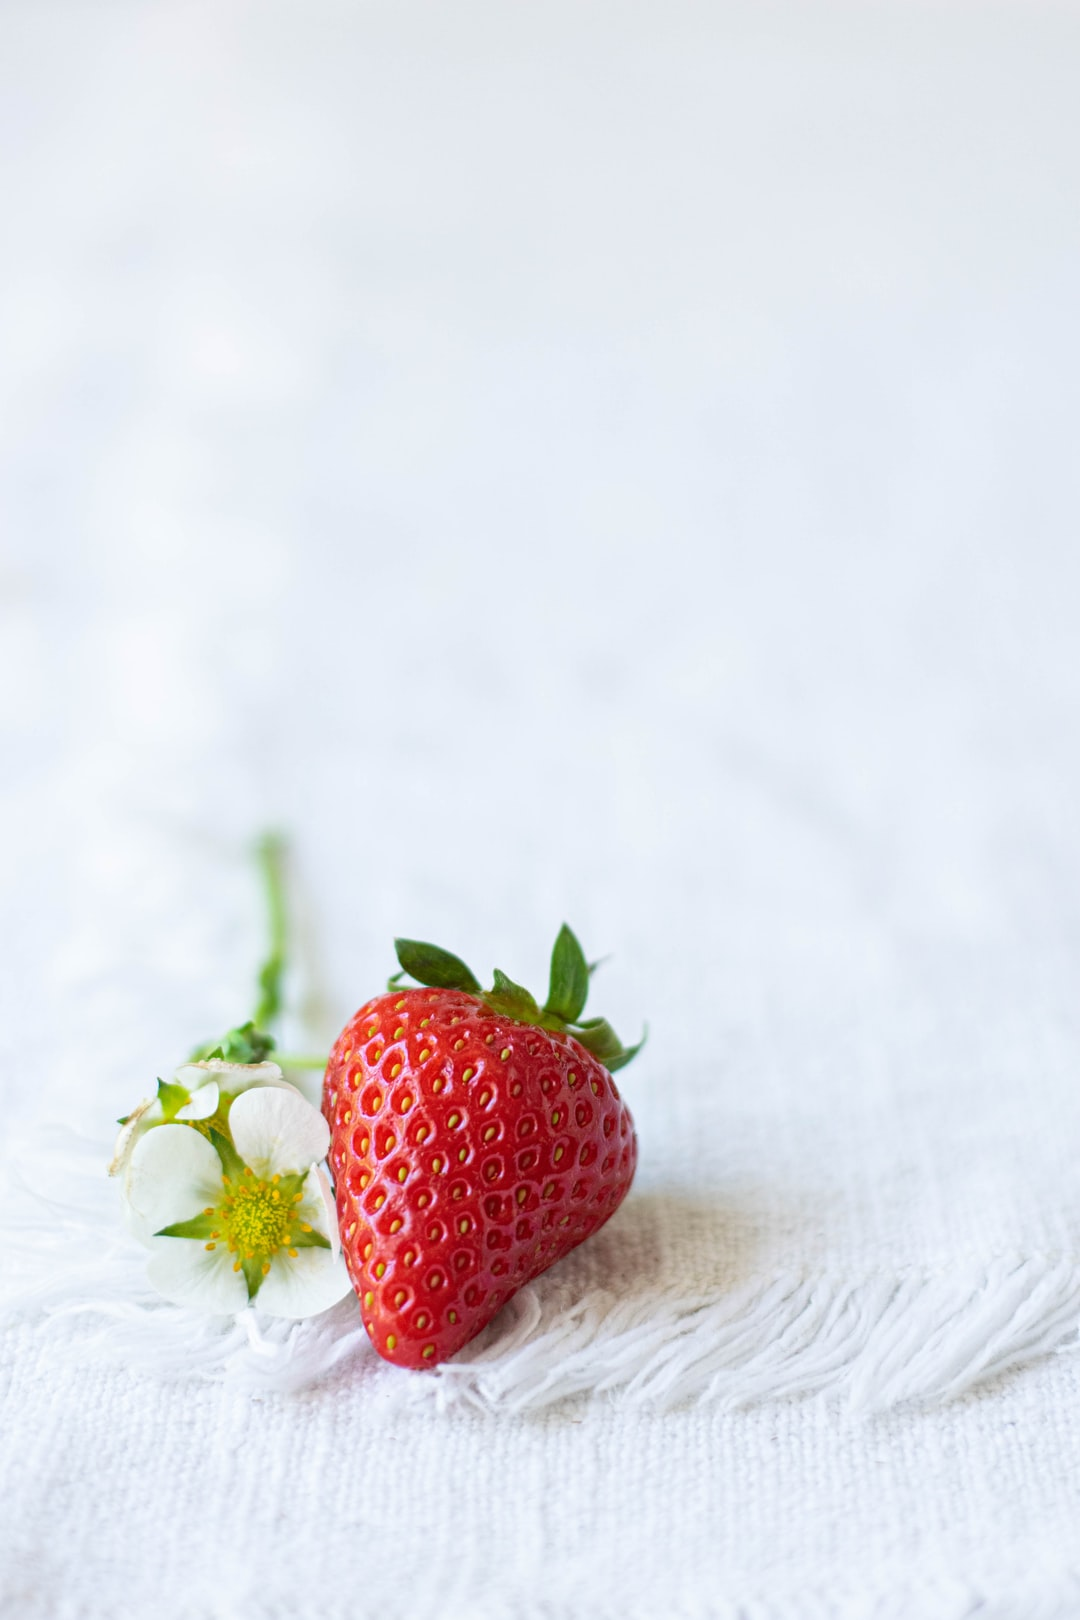 strawberry from the garden.